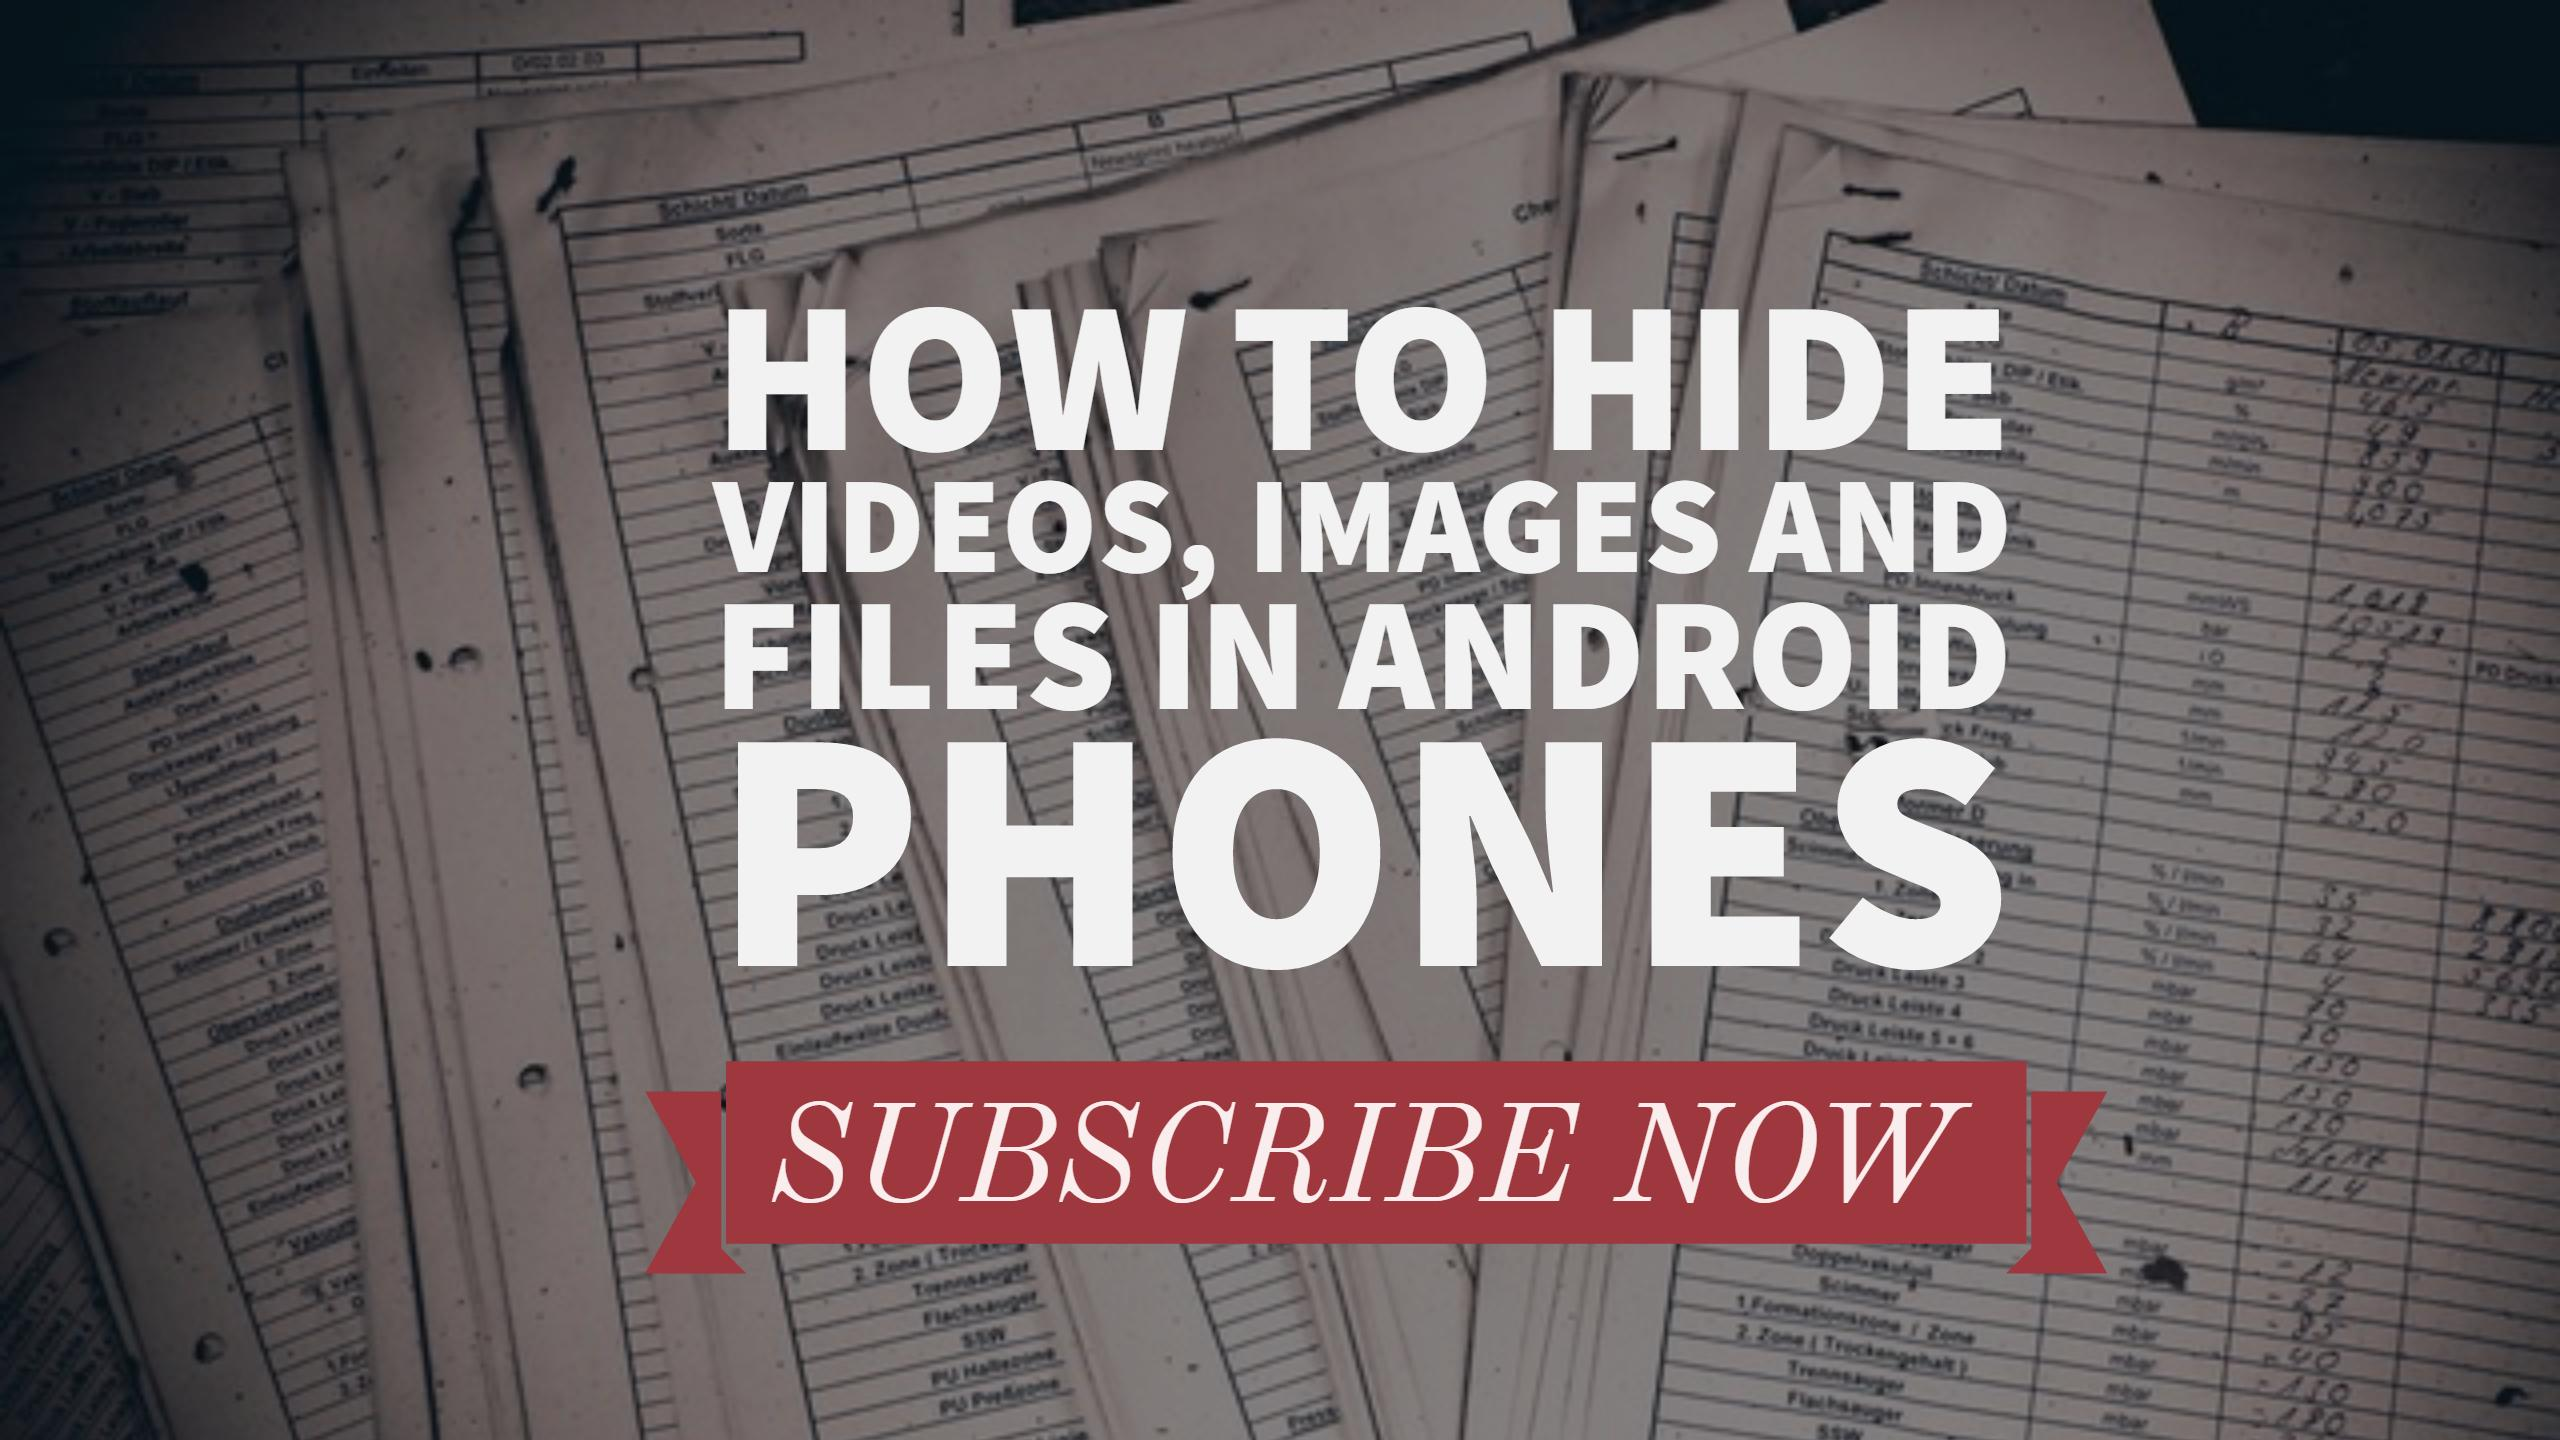 How to Hide Videos, Images and Files in Android Phones Hindi/Urdu March 2017